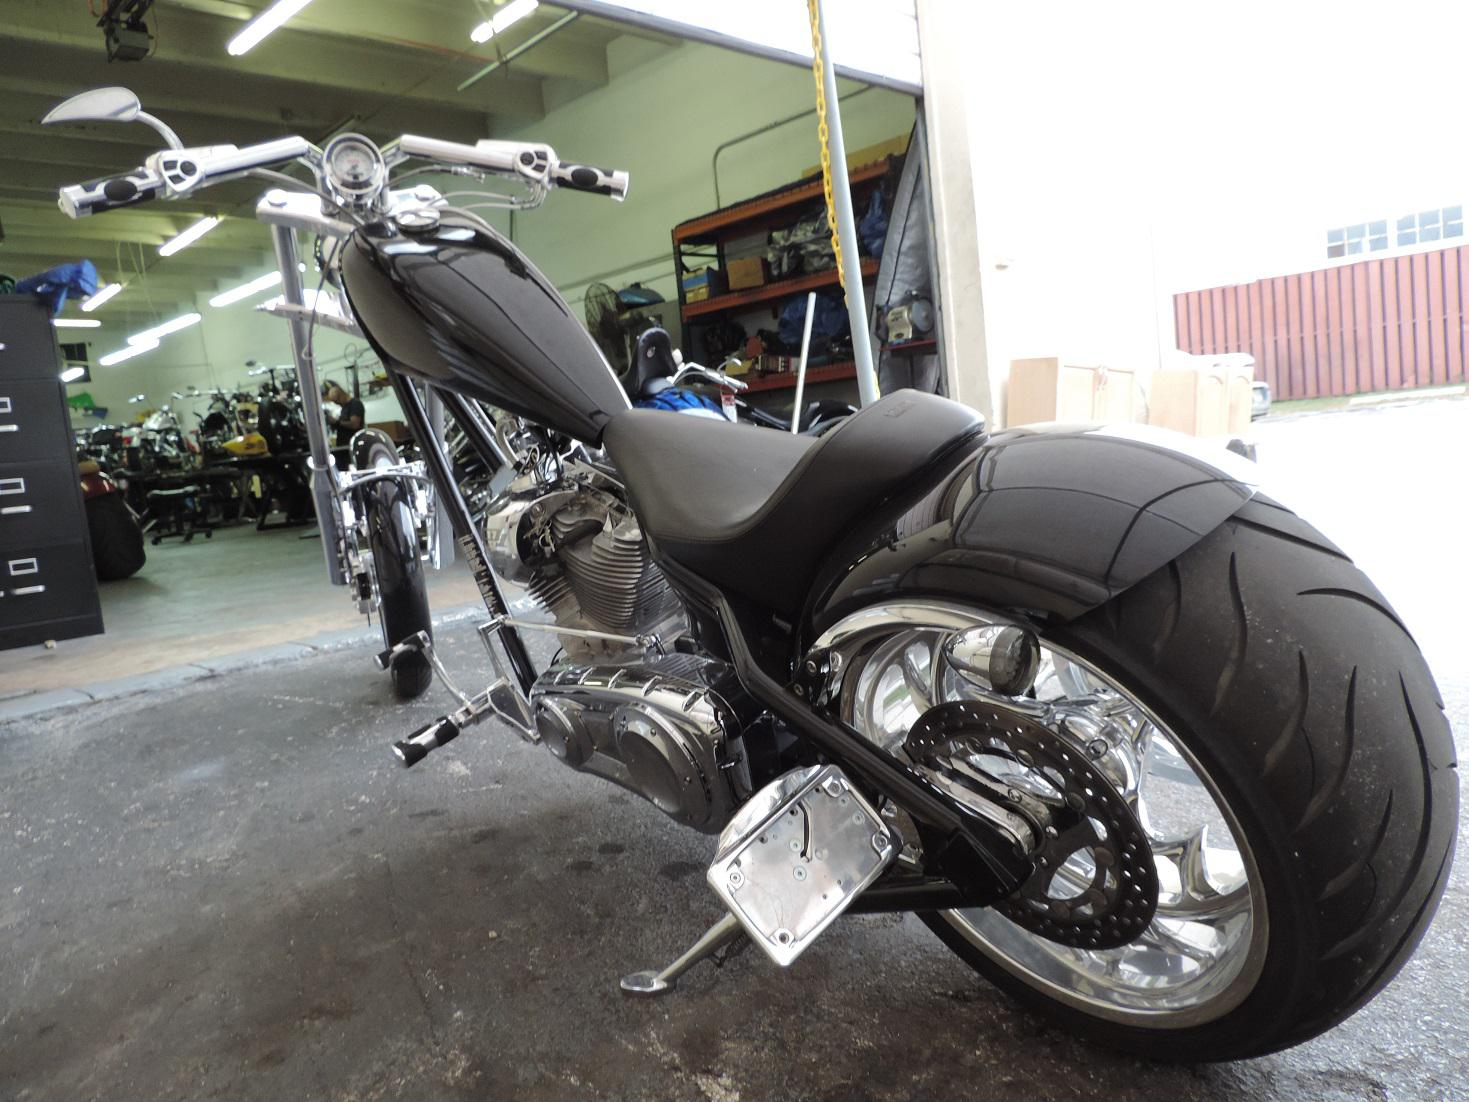 See more photos for this Big Dog Motorcycles Ridgeback, 2005 motorcycle listing